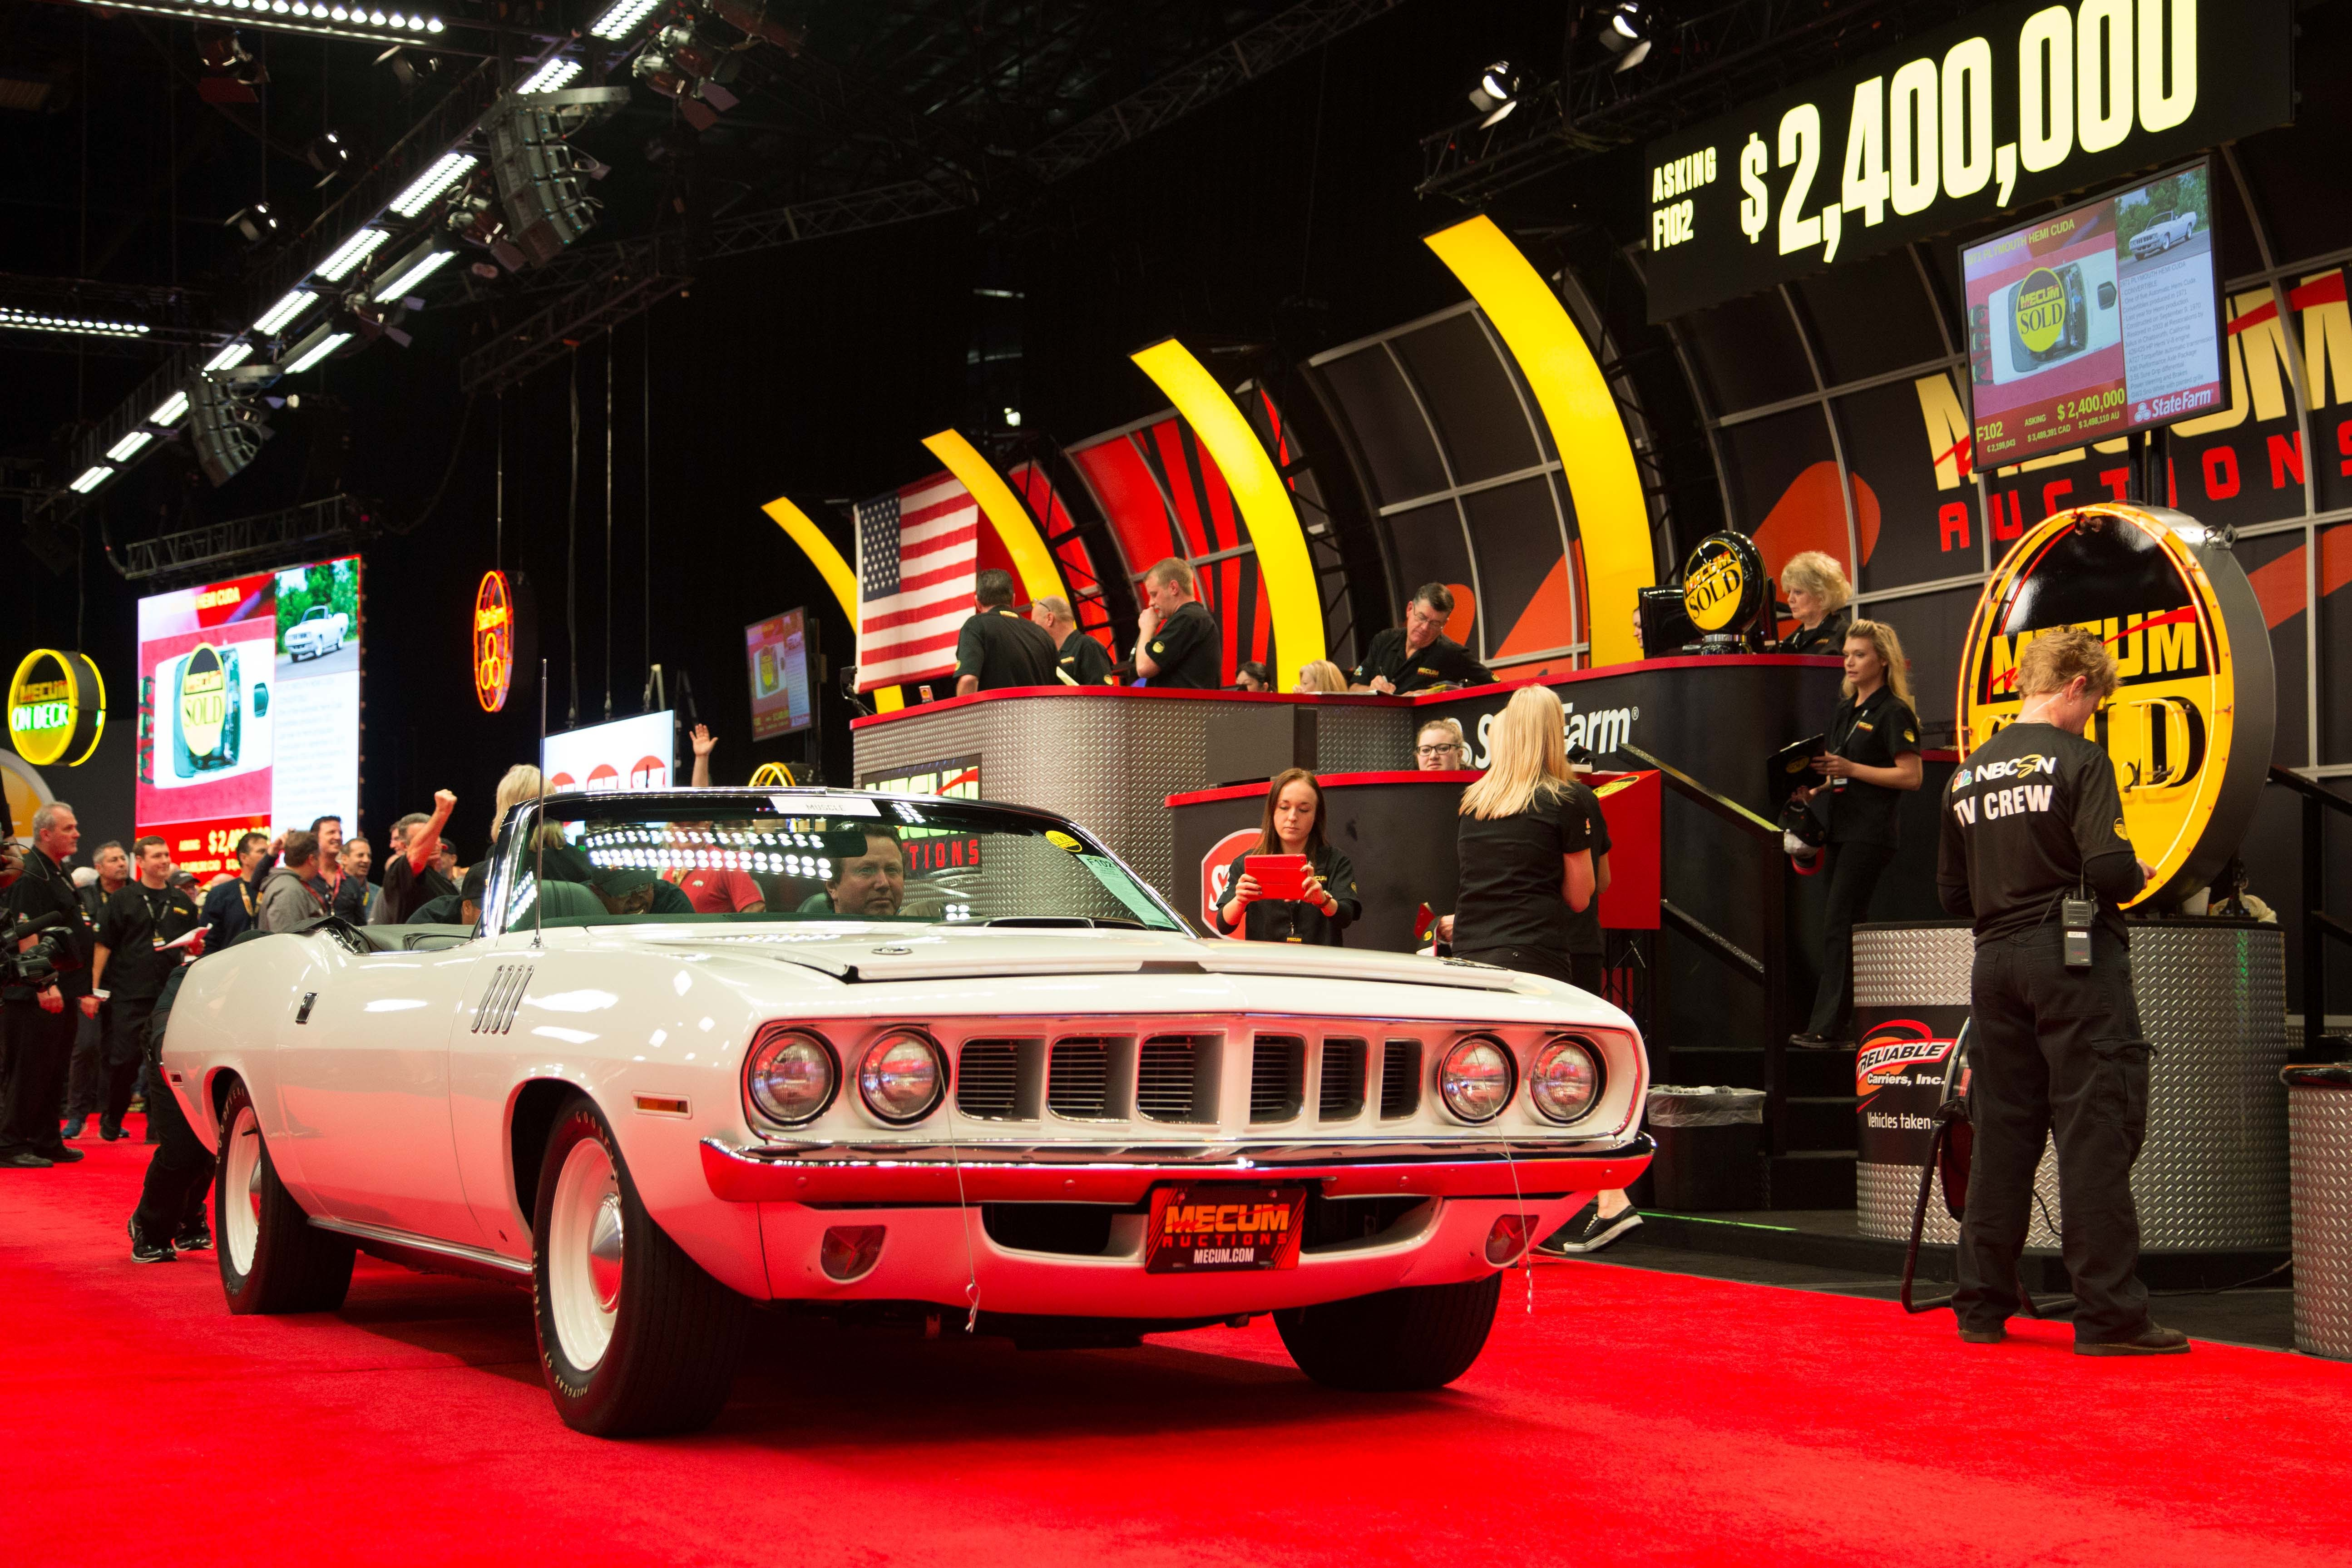 Car Auction Usa >> Mecum Kissimmee 2016's Day 8 Sees Million-Dollar Muscle Cars Get Sold - autoevolution